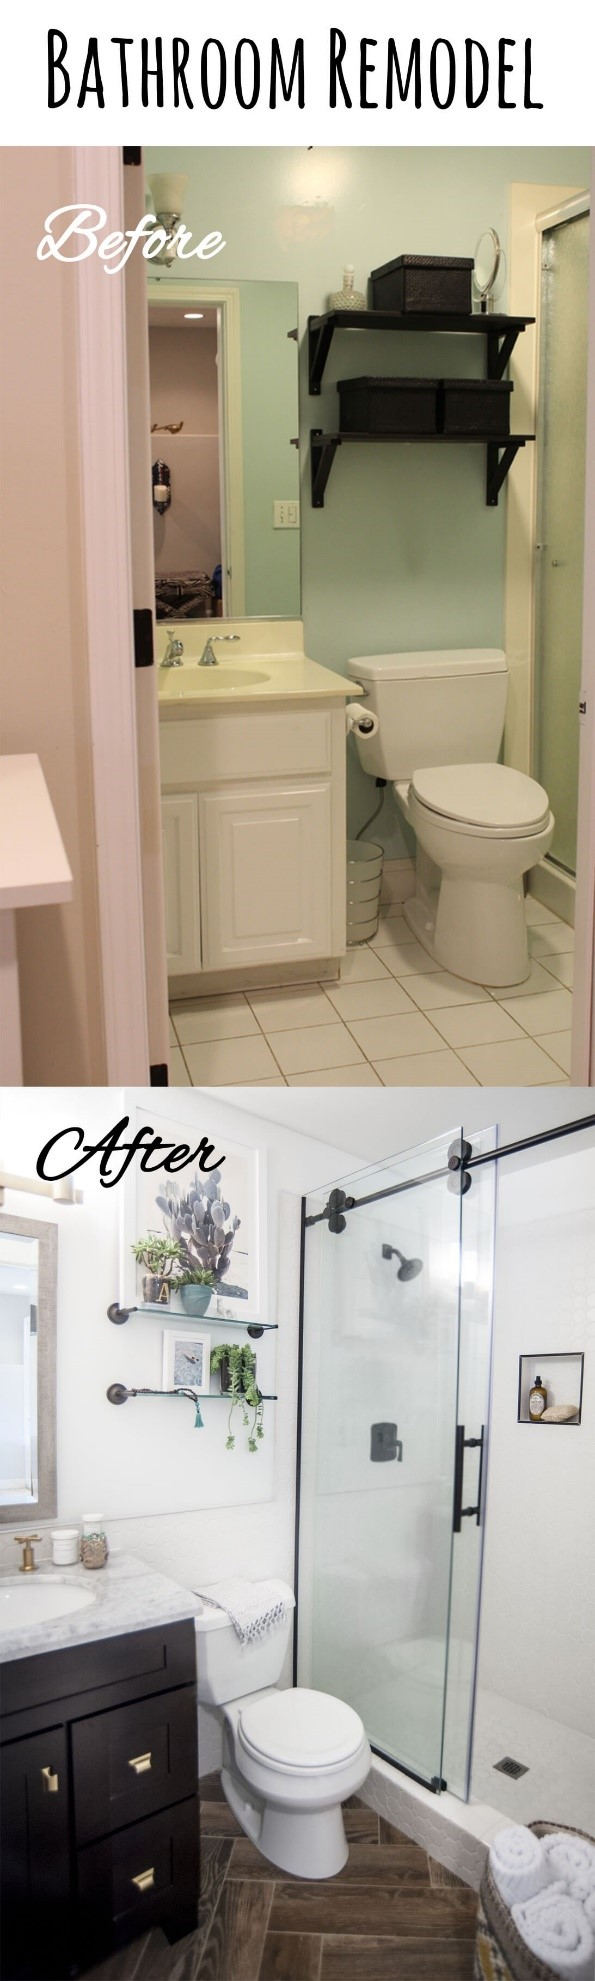 3 Replace the Vanity and Tiles of Your Bathroom via simphome